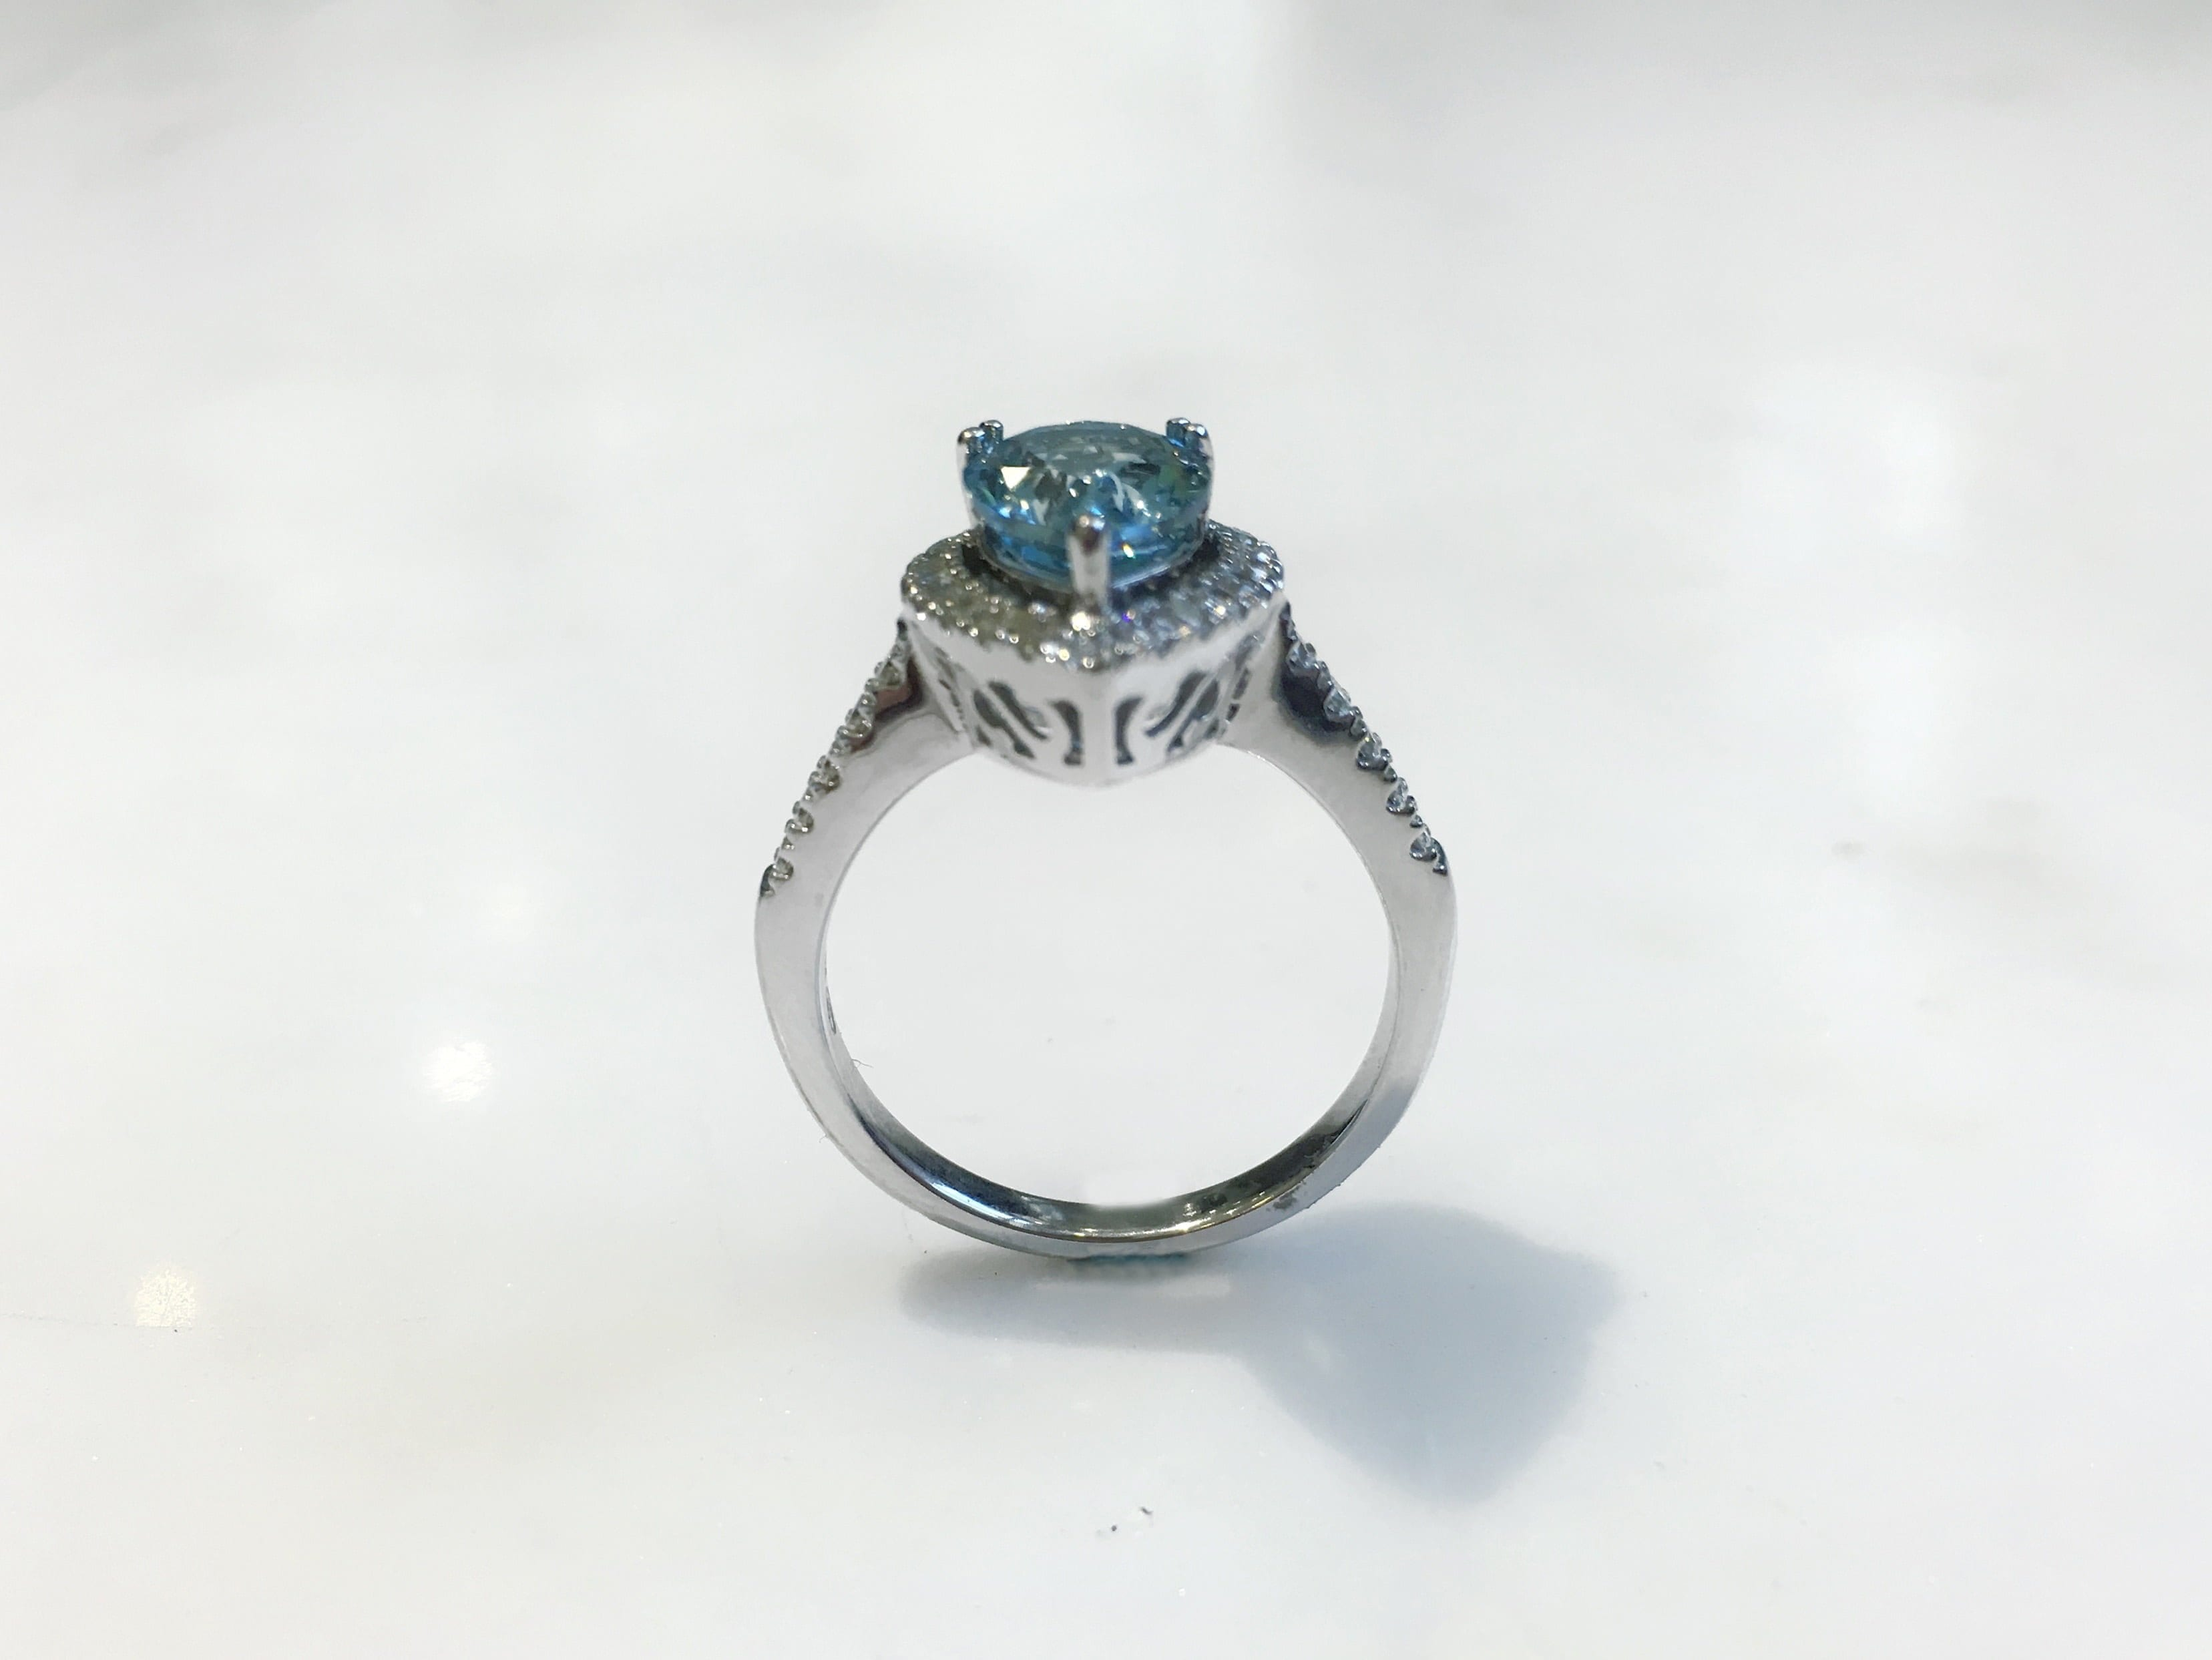 diamond gold jones d product vintage ernest aquamarine style number webstore white jewellery ring